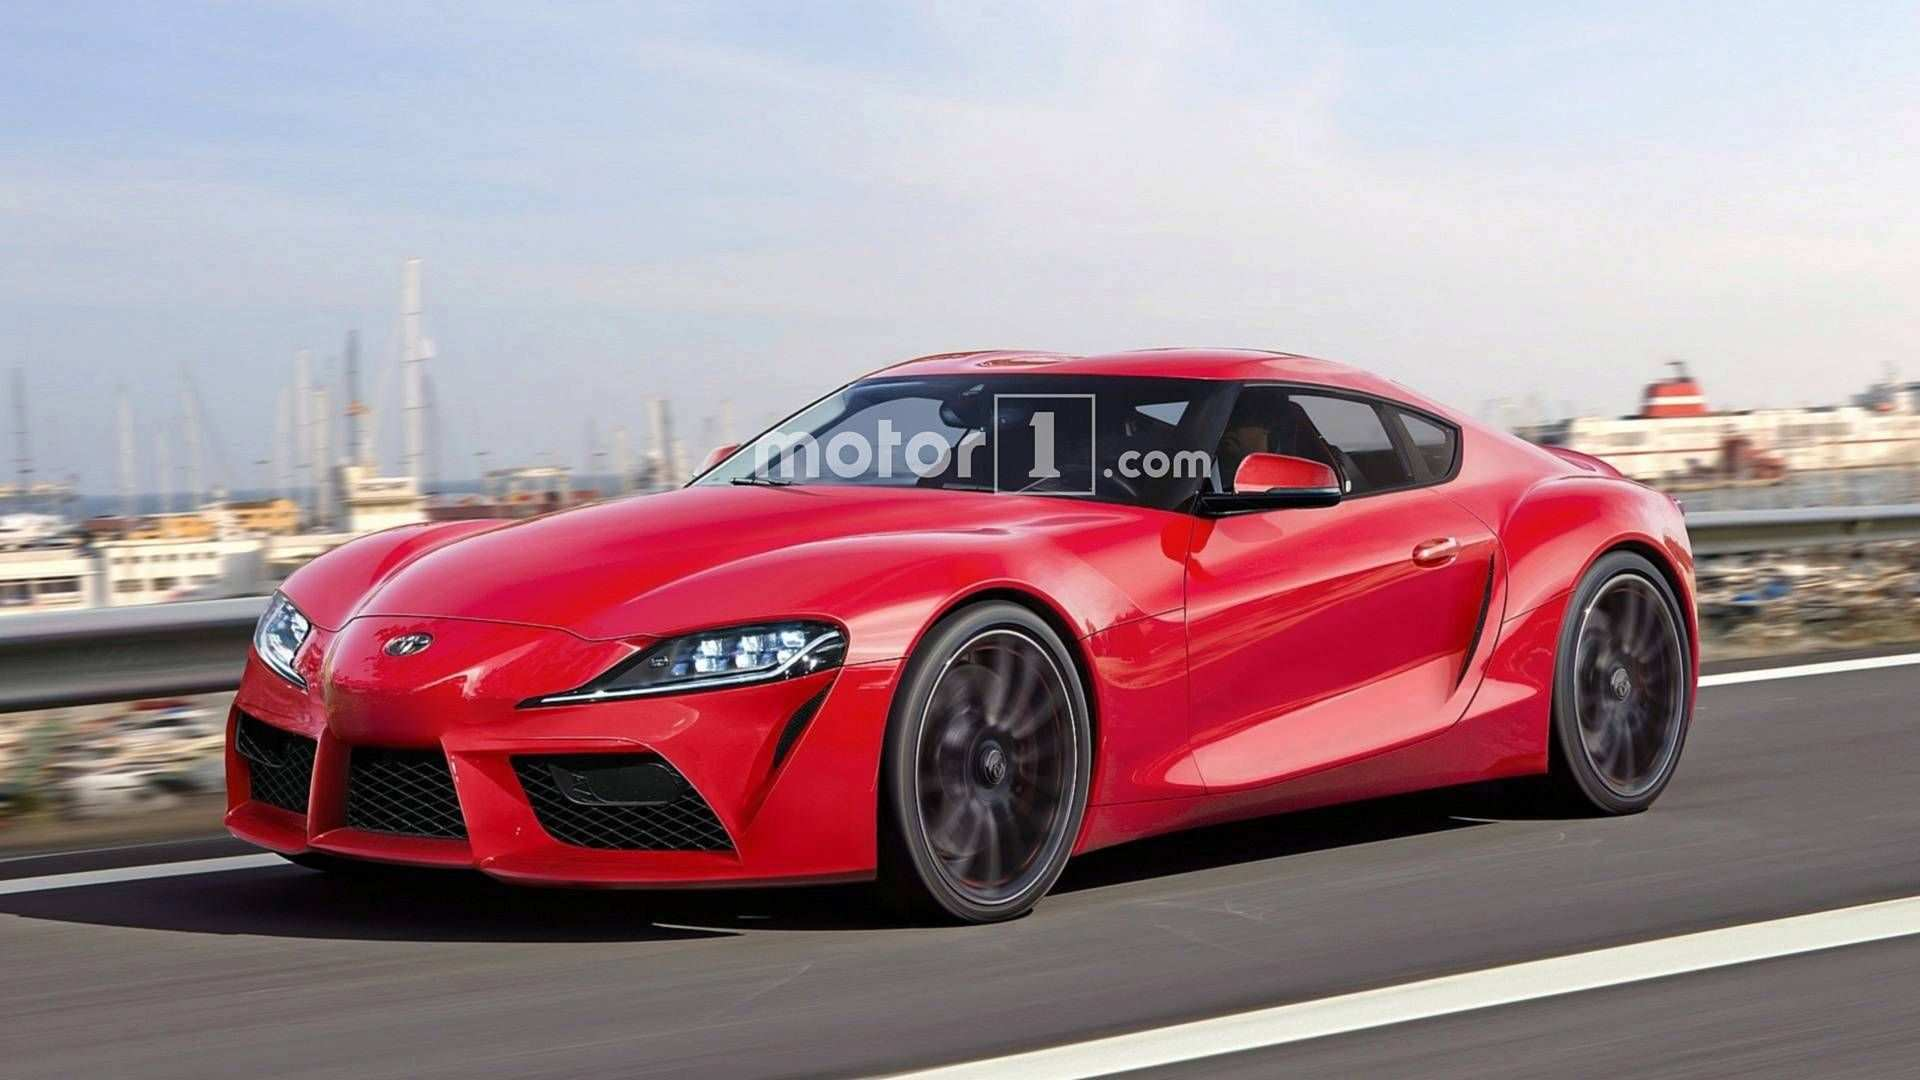 34 The New Supra Toyota 2019 Redesign And Price Engine with New Supra Toyota 2019 Redesign And Price